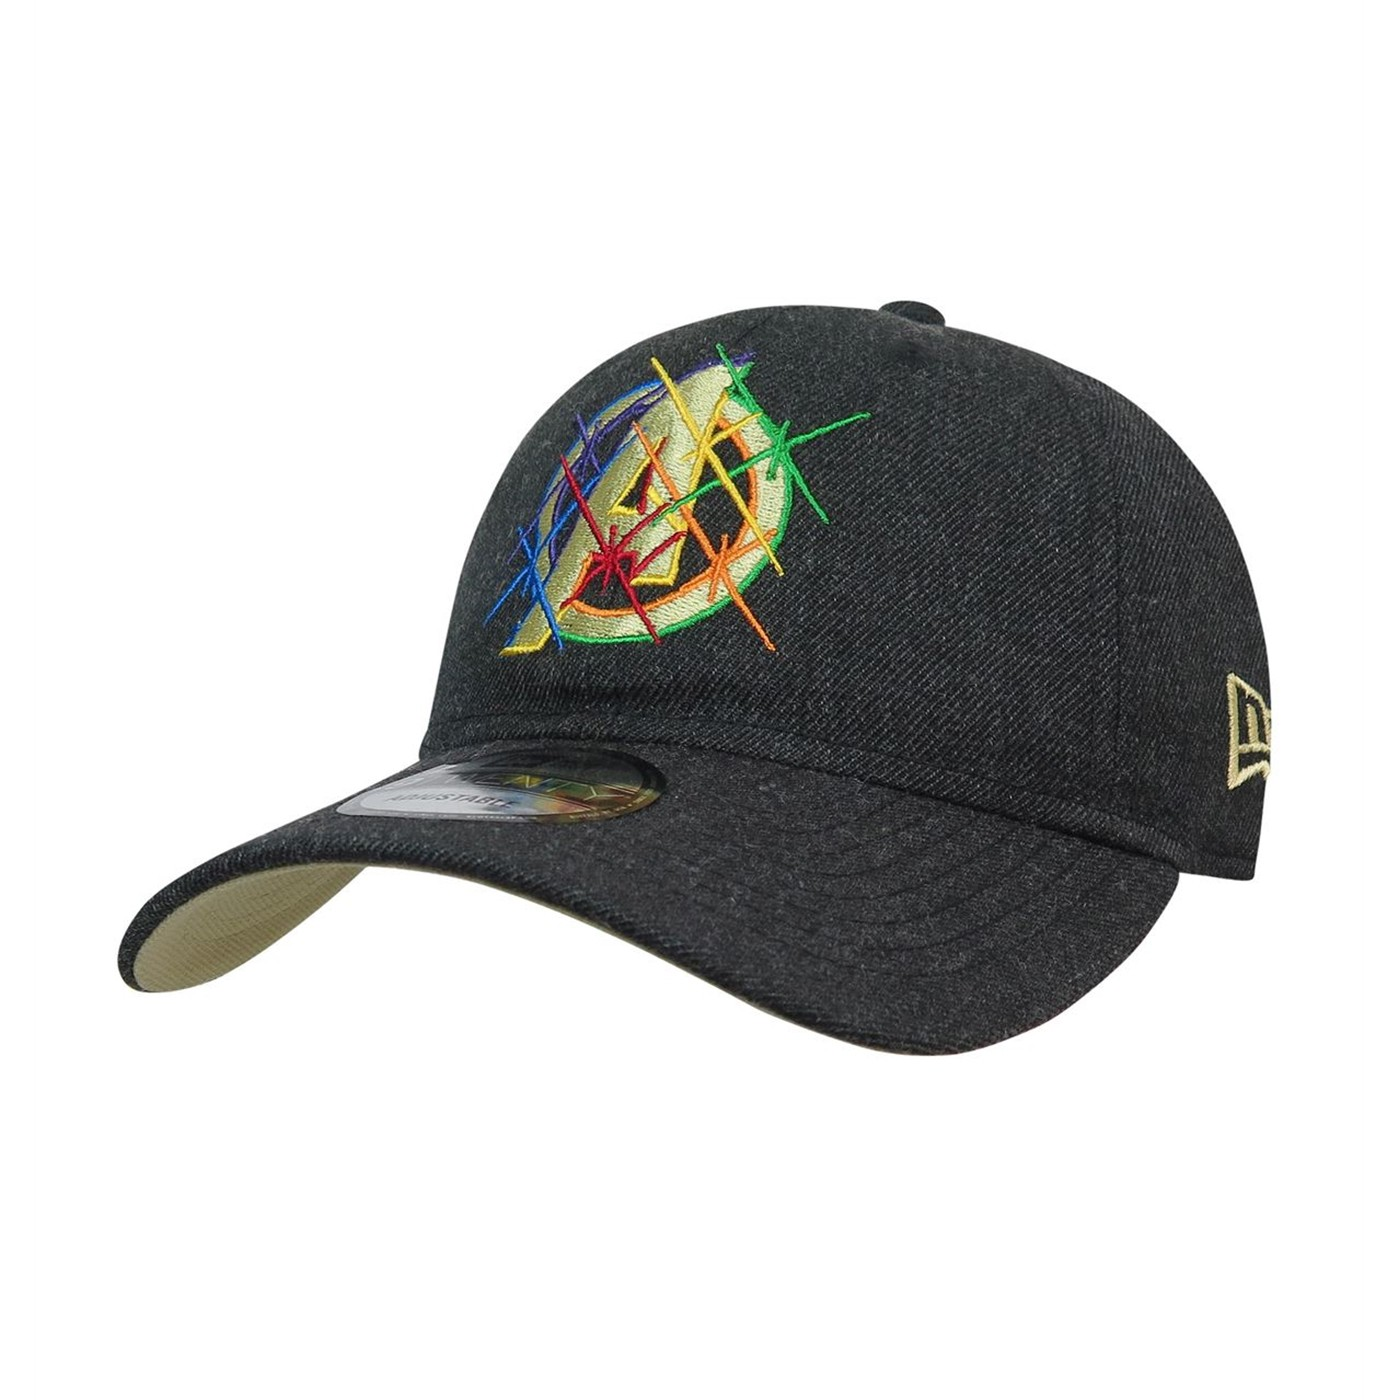 Avengers Infinity War Logo 9Twenty Adjustable Hat